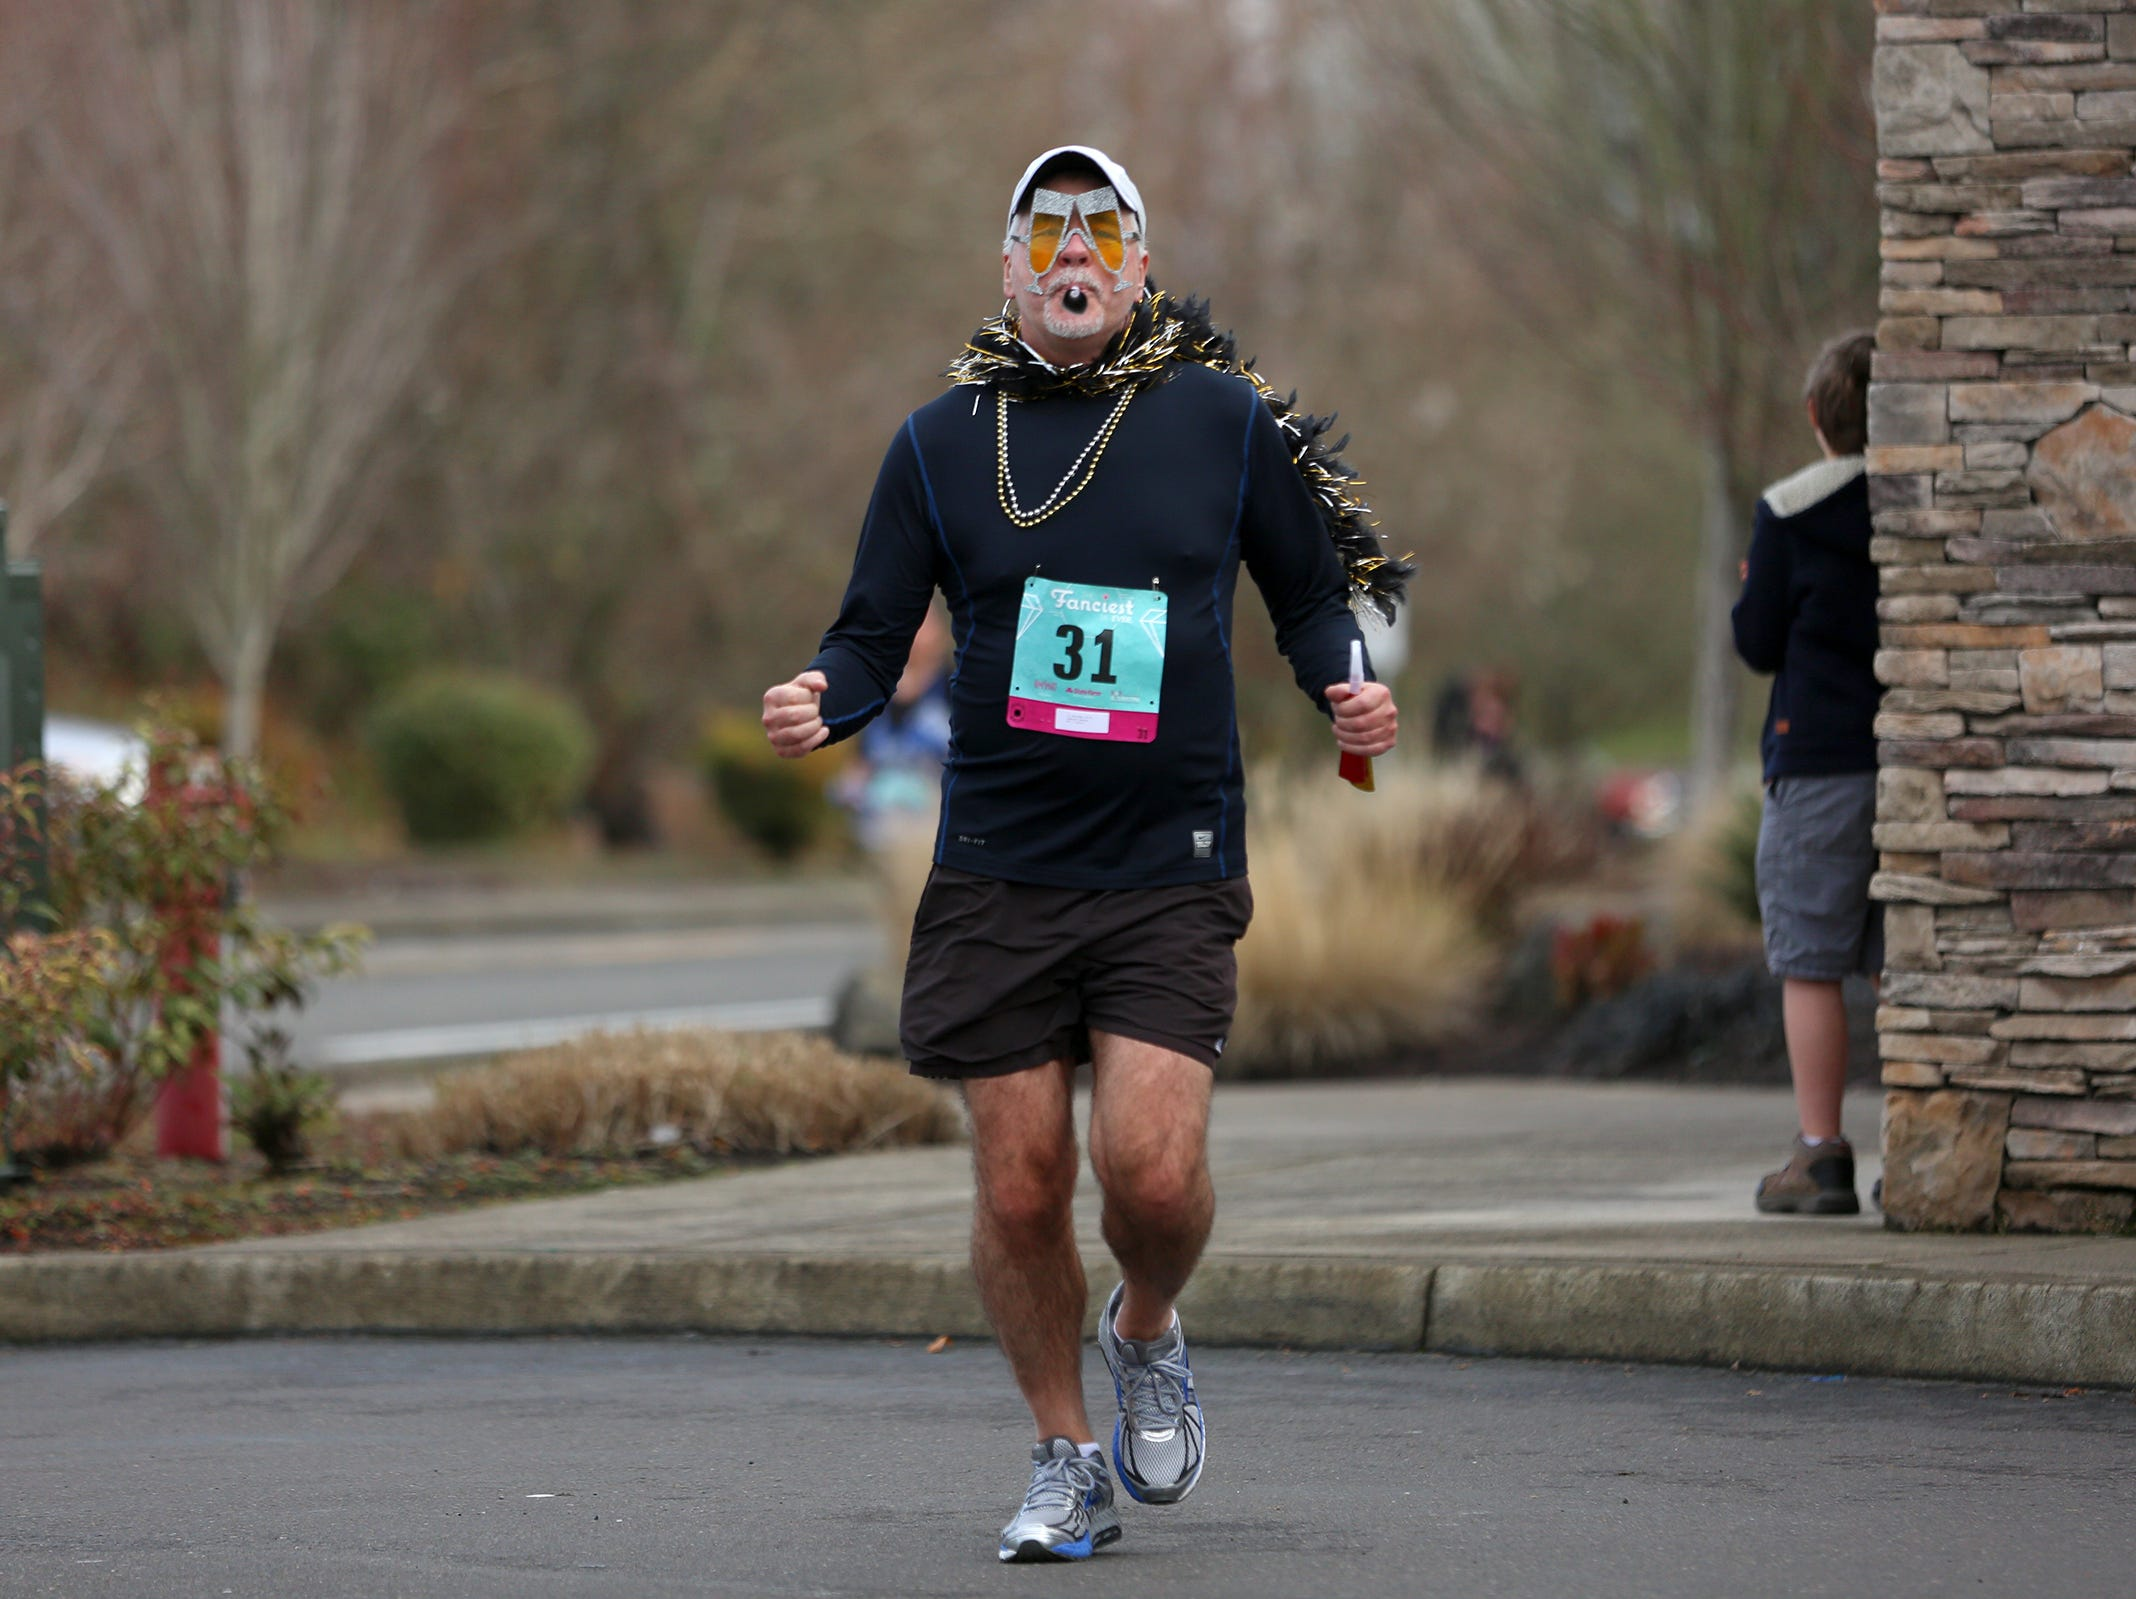 Runners cross the finish line at The Fanciest 5K. Ever. in Salem on Saturday, Dec. 29. All of the money raised will go directly to advocacy for sex-trafficking survivors in the mid-Willamette Valley.